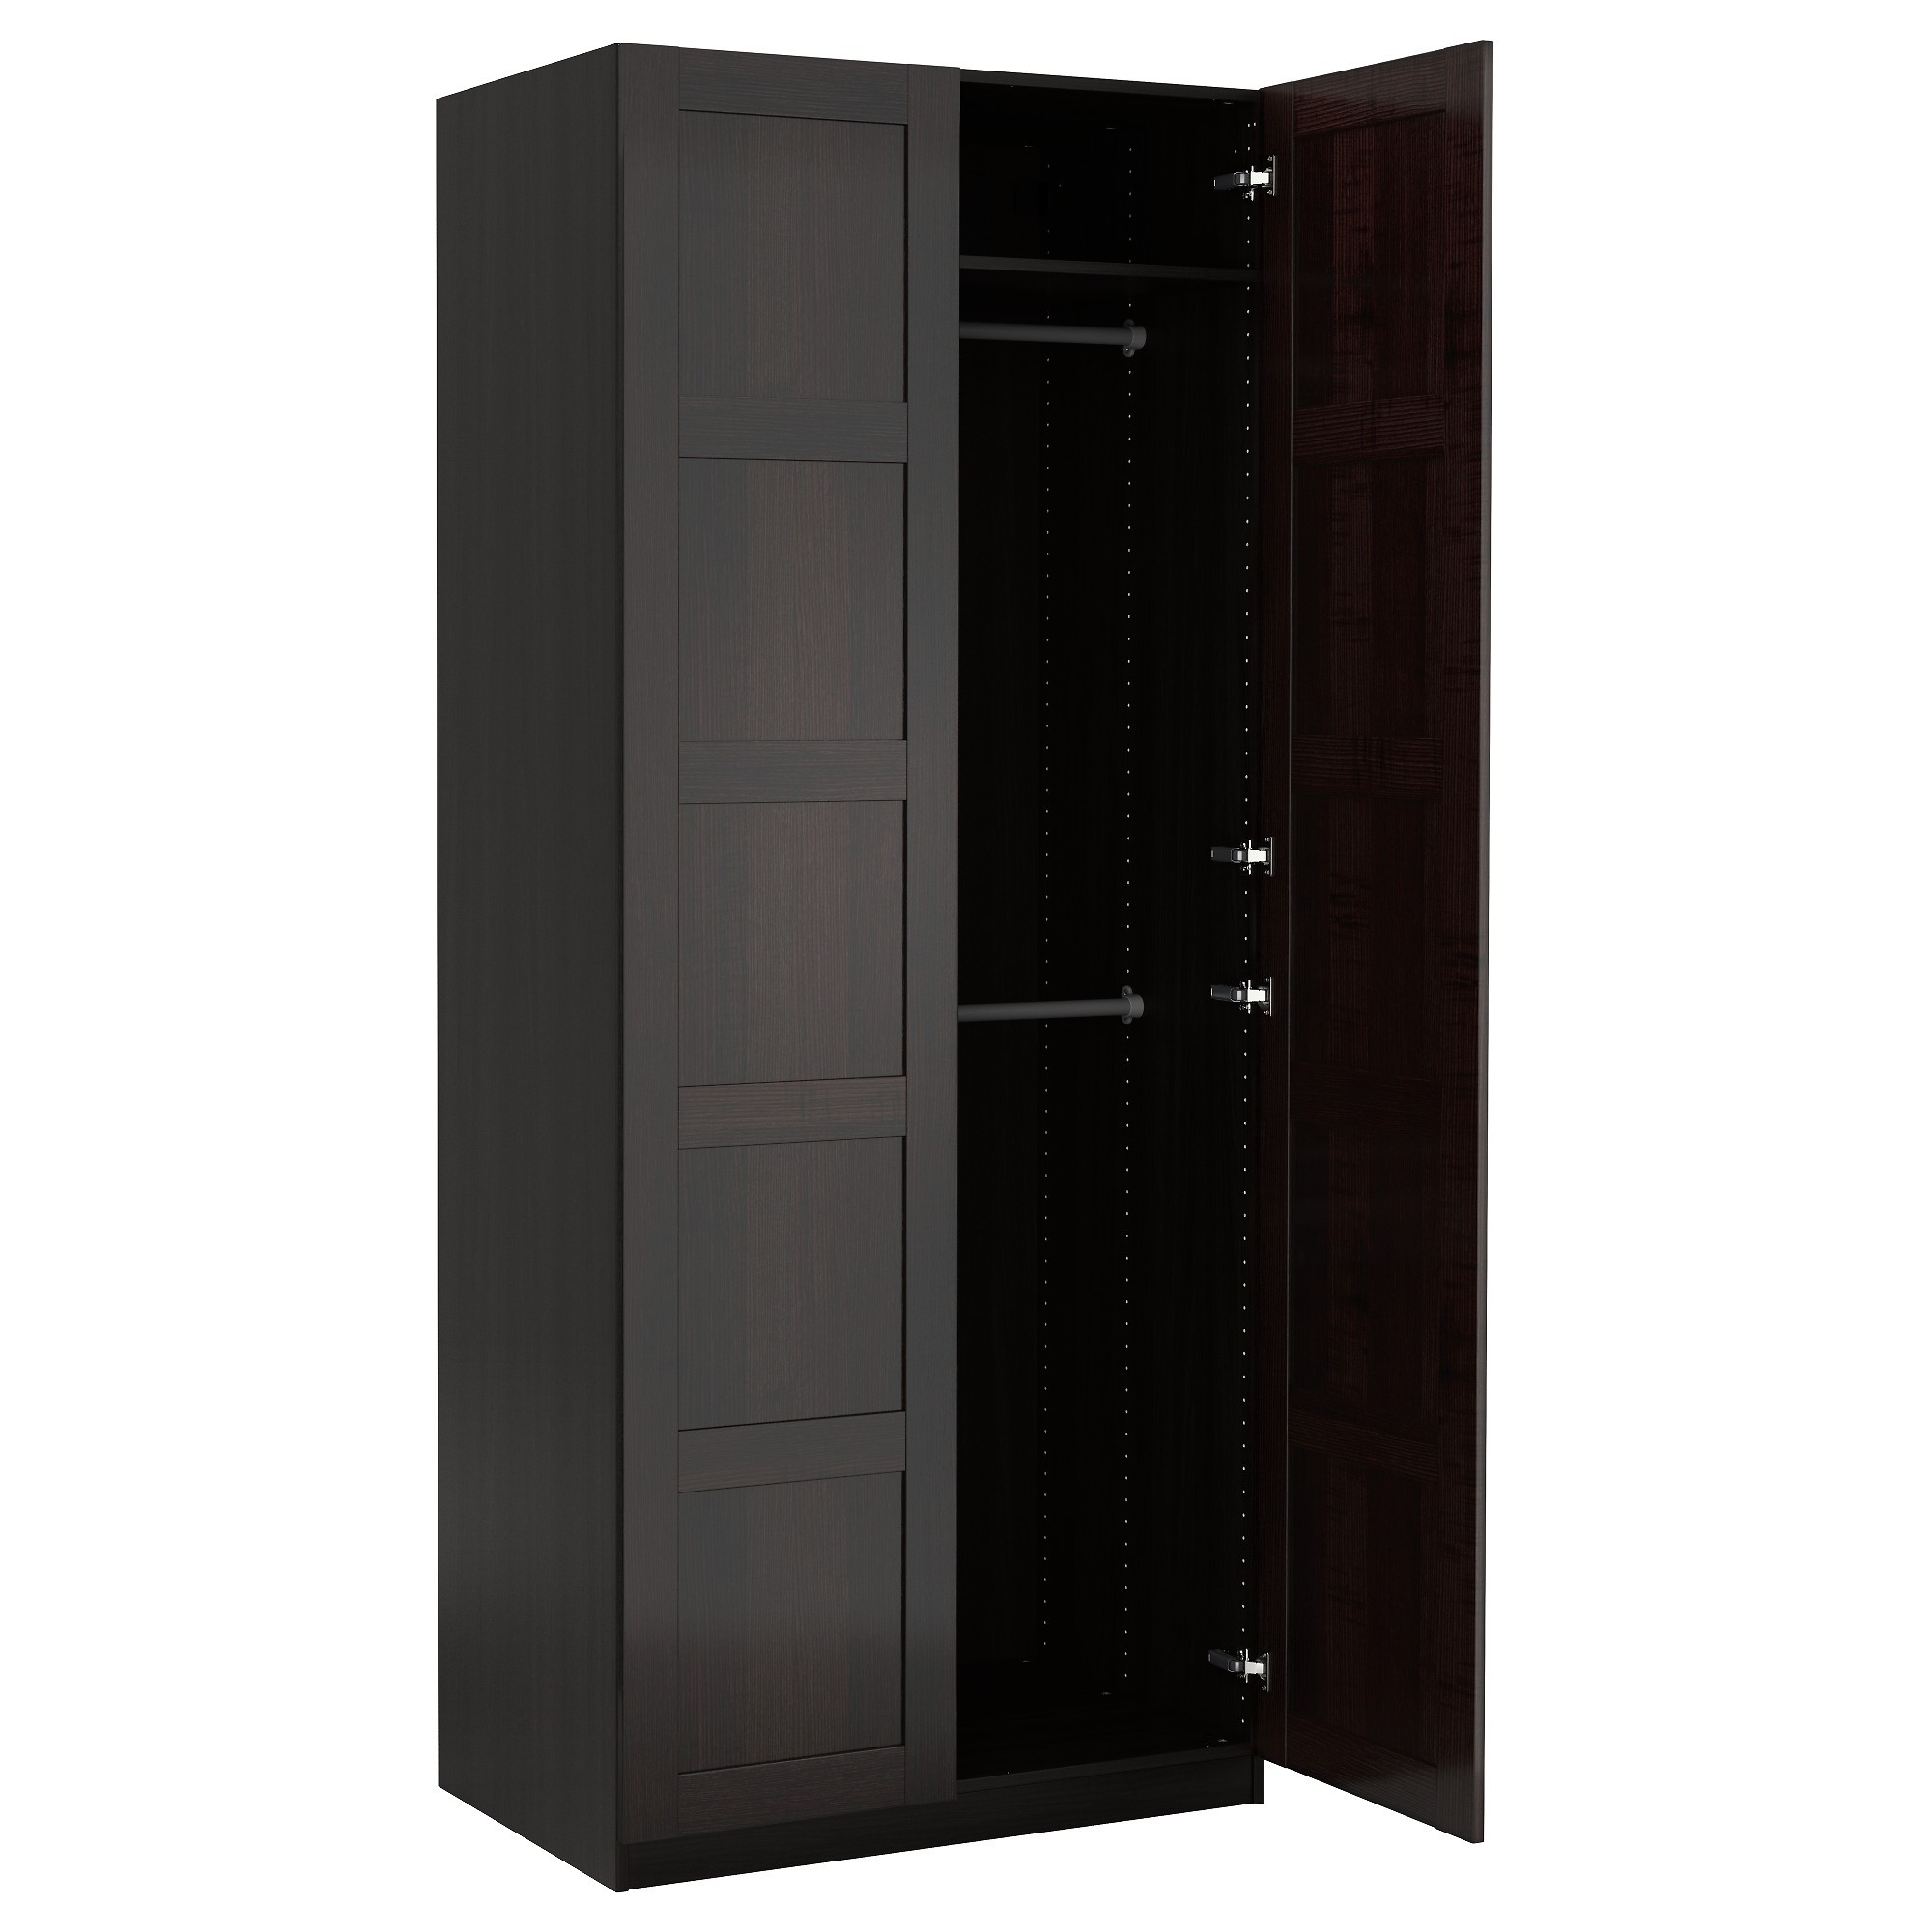 armoire penderie blanche ikea armoire id es de d coration de maison dolvjqbl8m. Black Bedroom Furniture Sets. Home Design Ideas